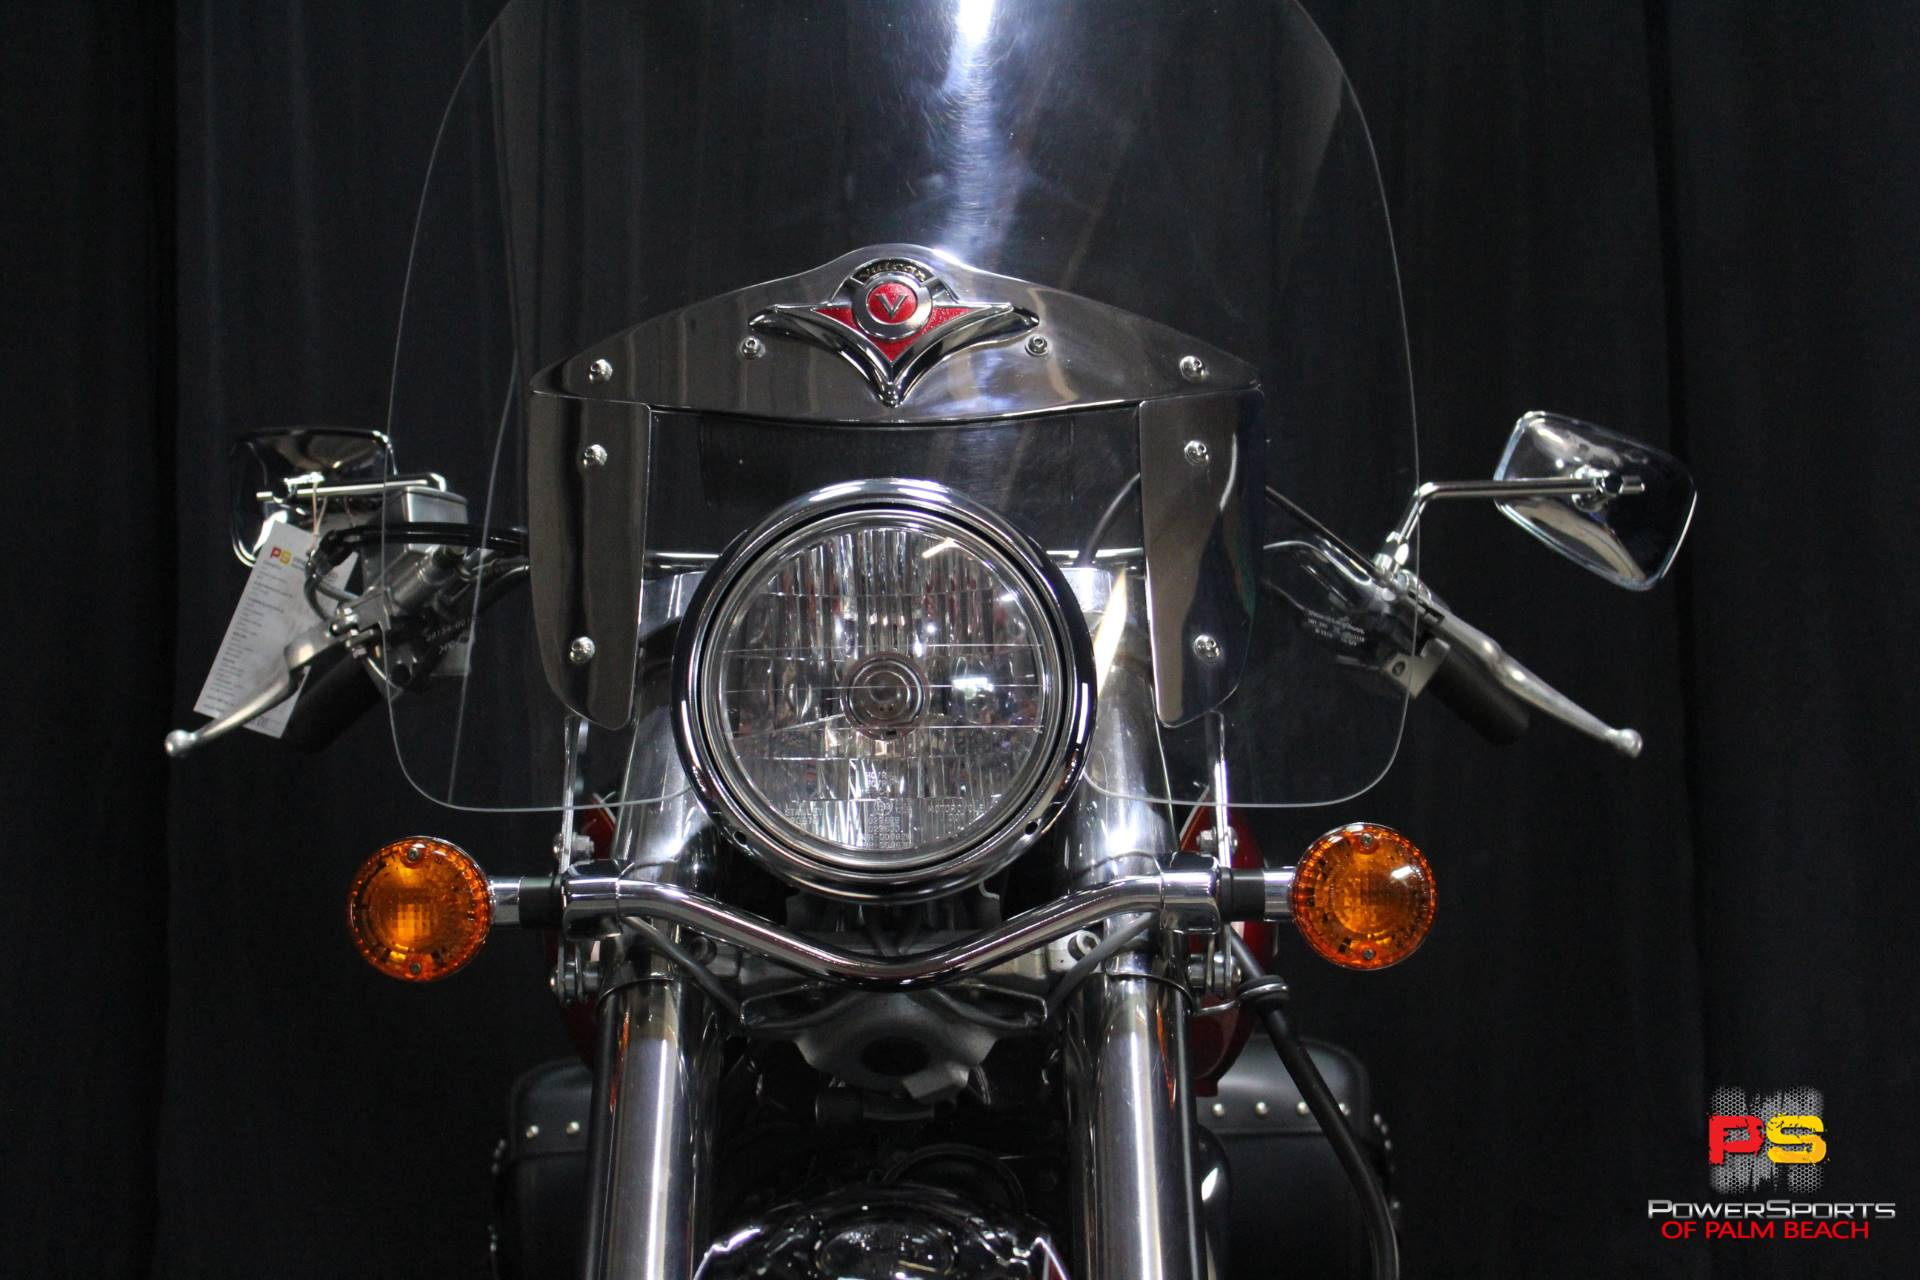 2006 Kawasaki Vulcan 900 Classic LT in Lake Park, Florida - Photo 11